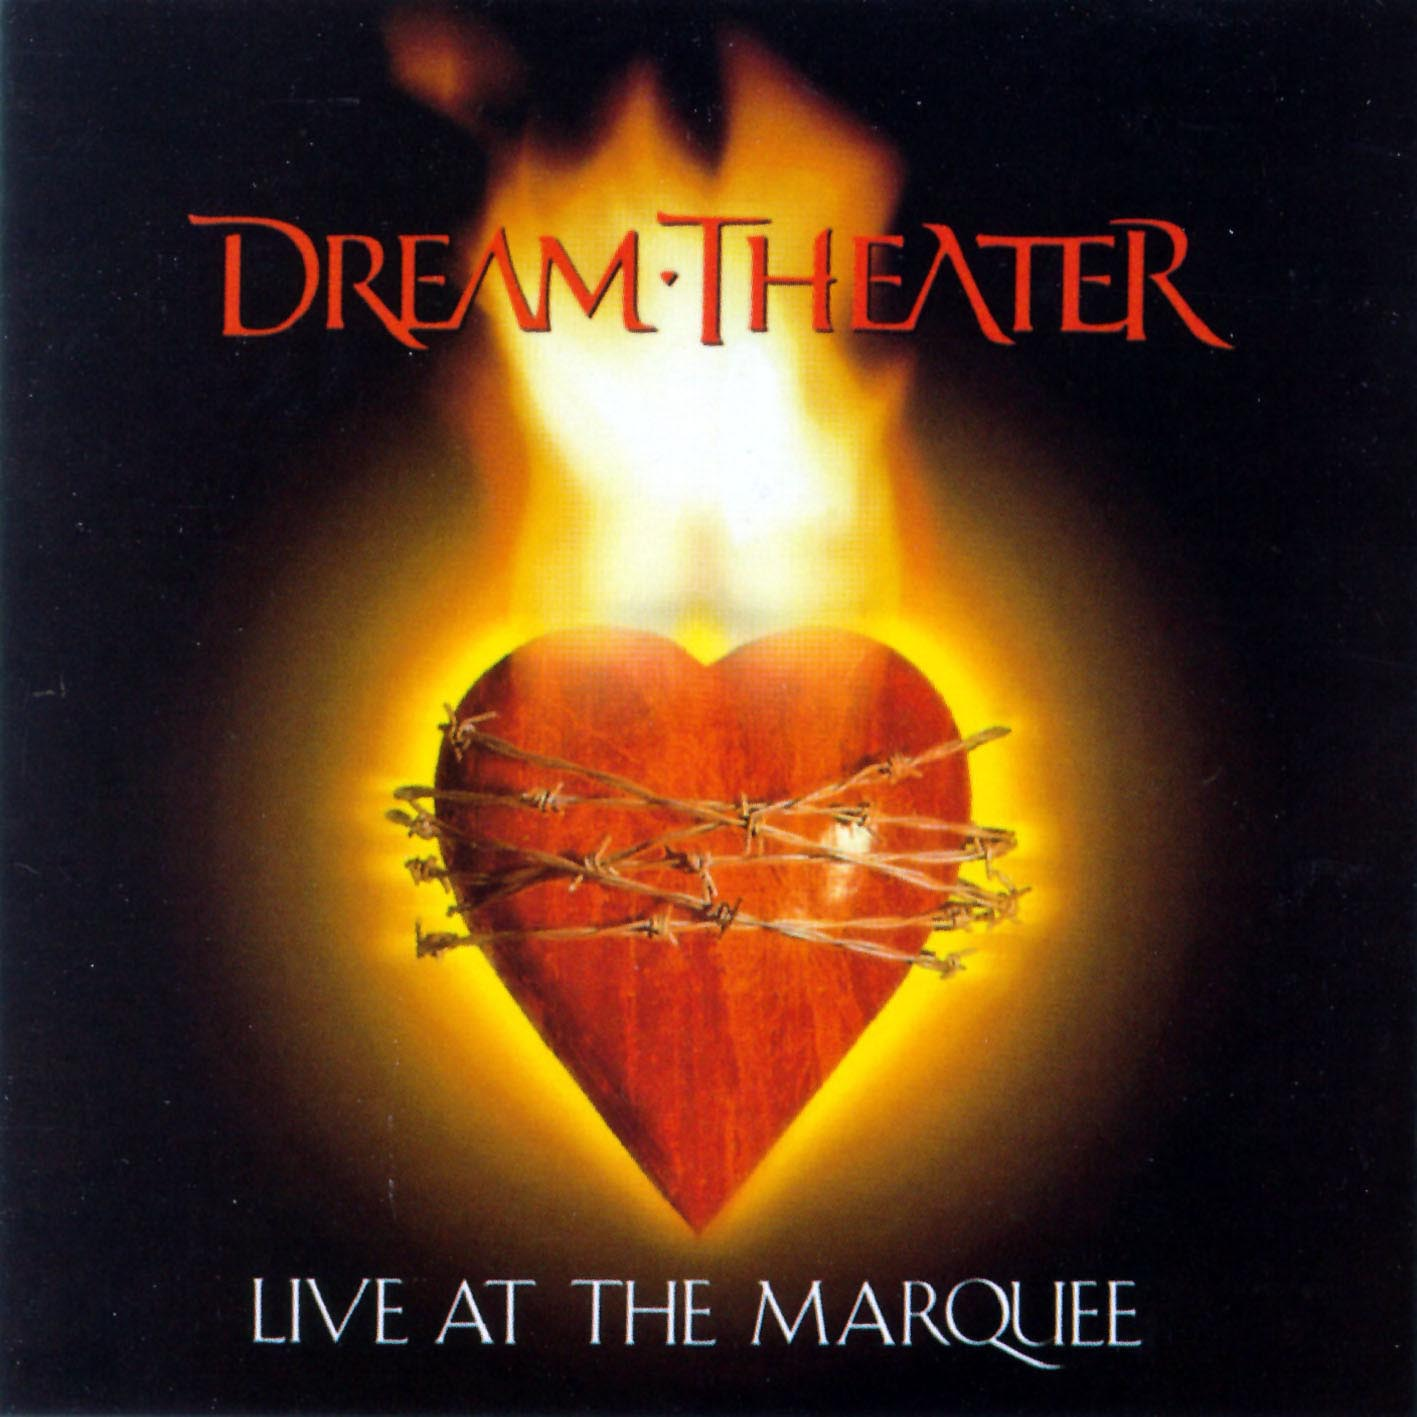 Dream Theater - Live At The Marquee (life) - 1993